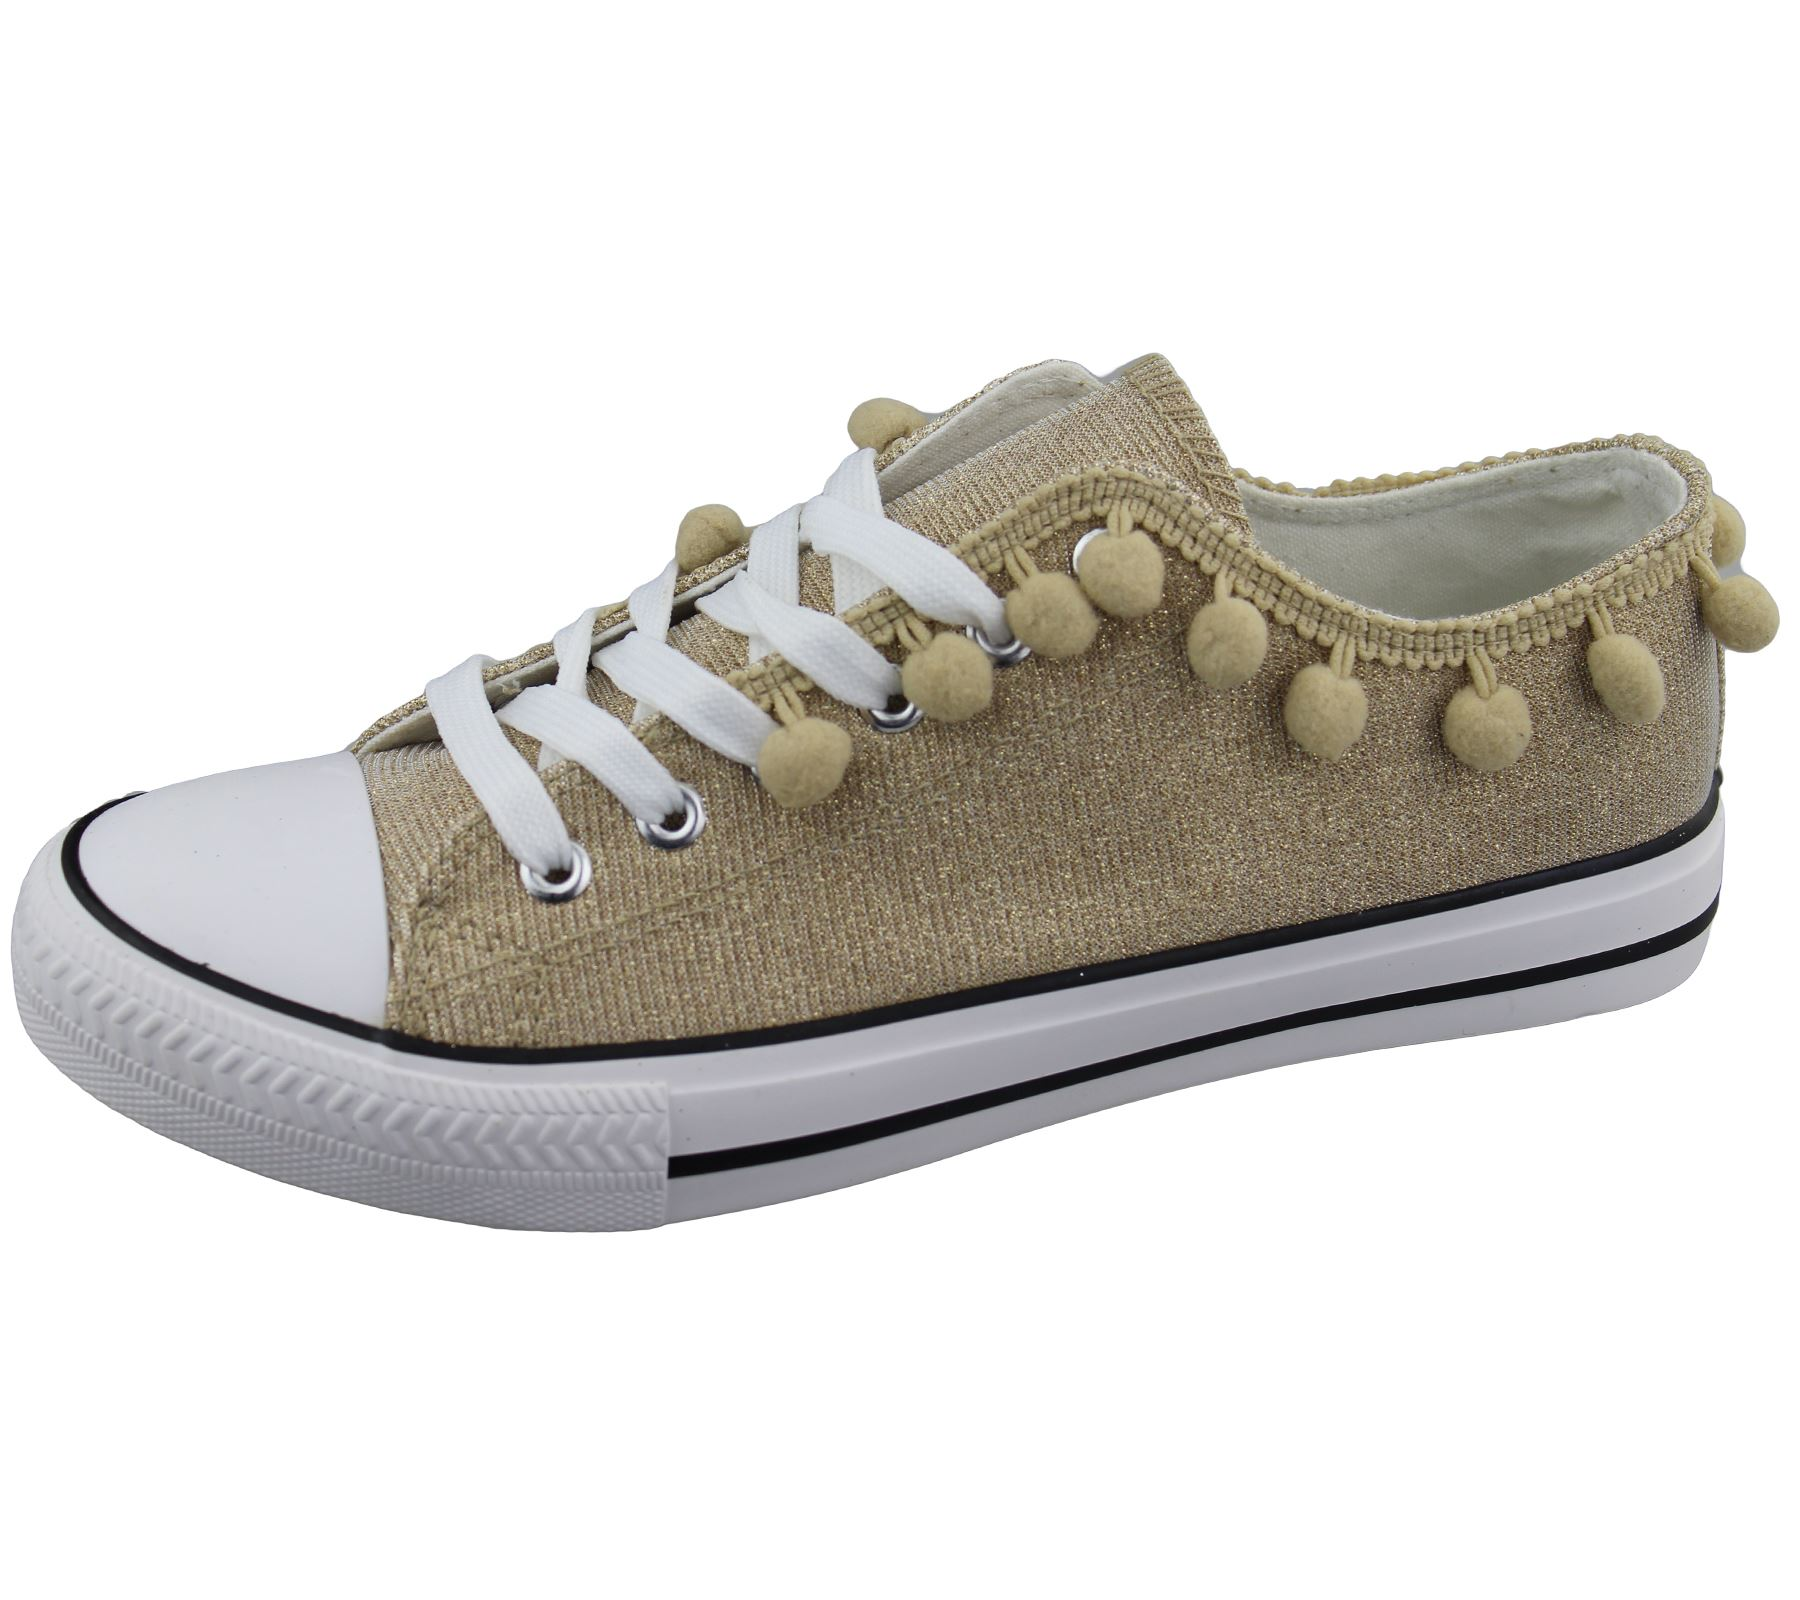 Womens-Sneakers-Flat-Pumps-Ladies-Glittered-Summer-Plimsole-Canvas-Shoes thumbnail 20